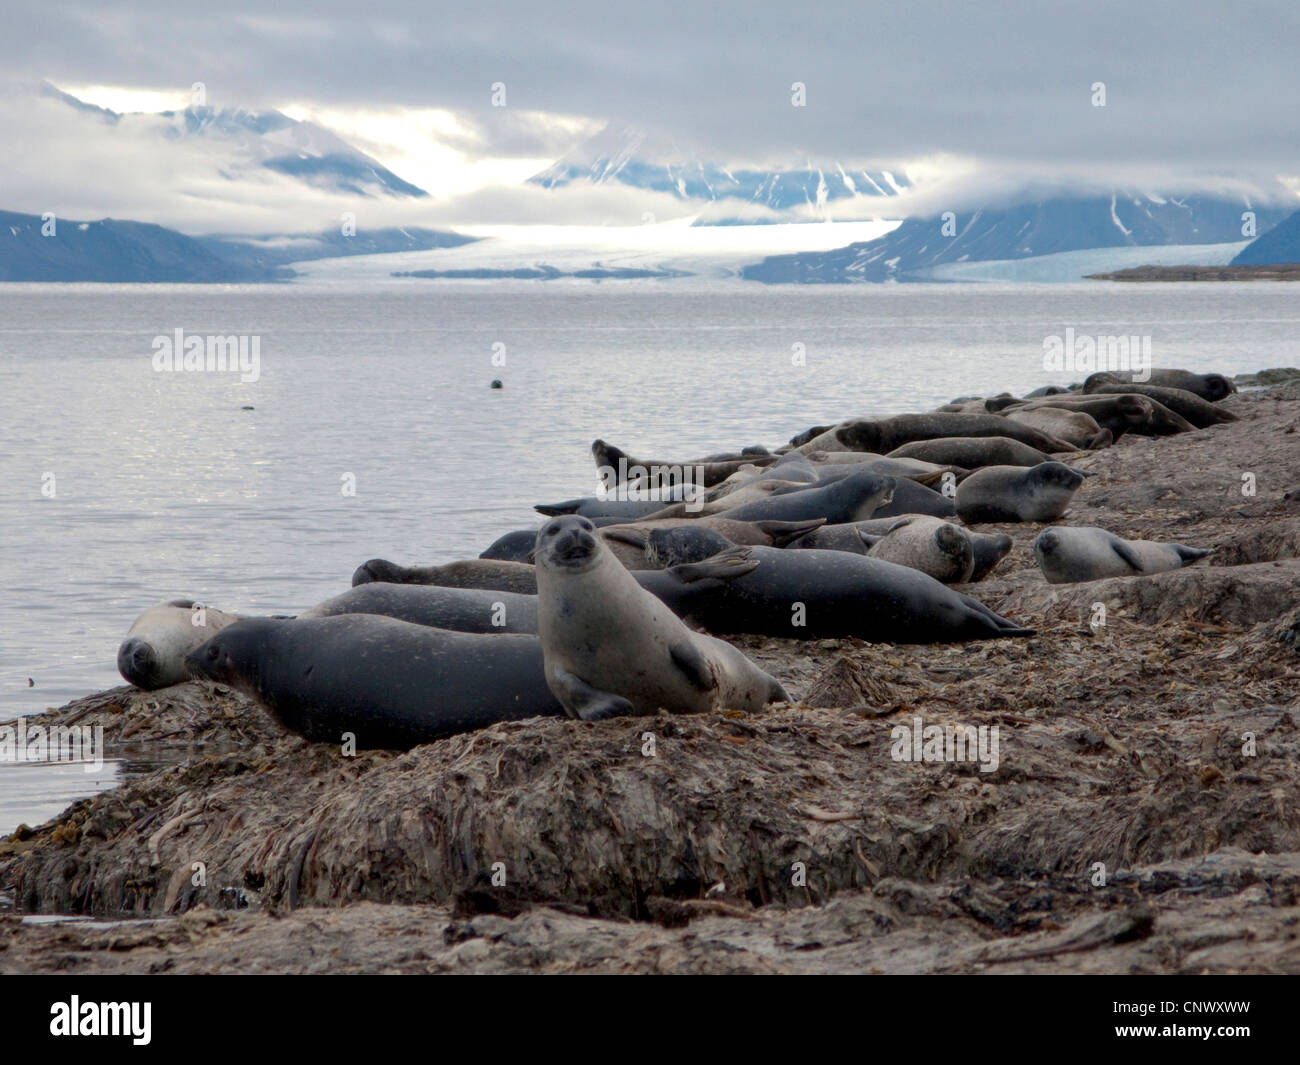 harbor seal, common seal (Phoca vitulina), colony with glacier in the background, Norway, Svalbard, Fuglehuken - Stock Image